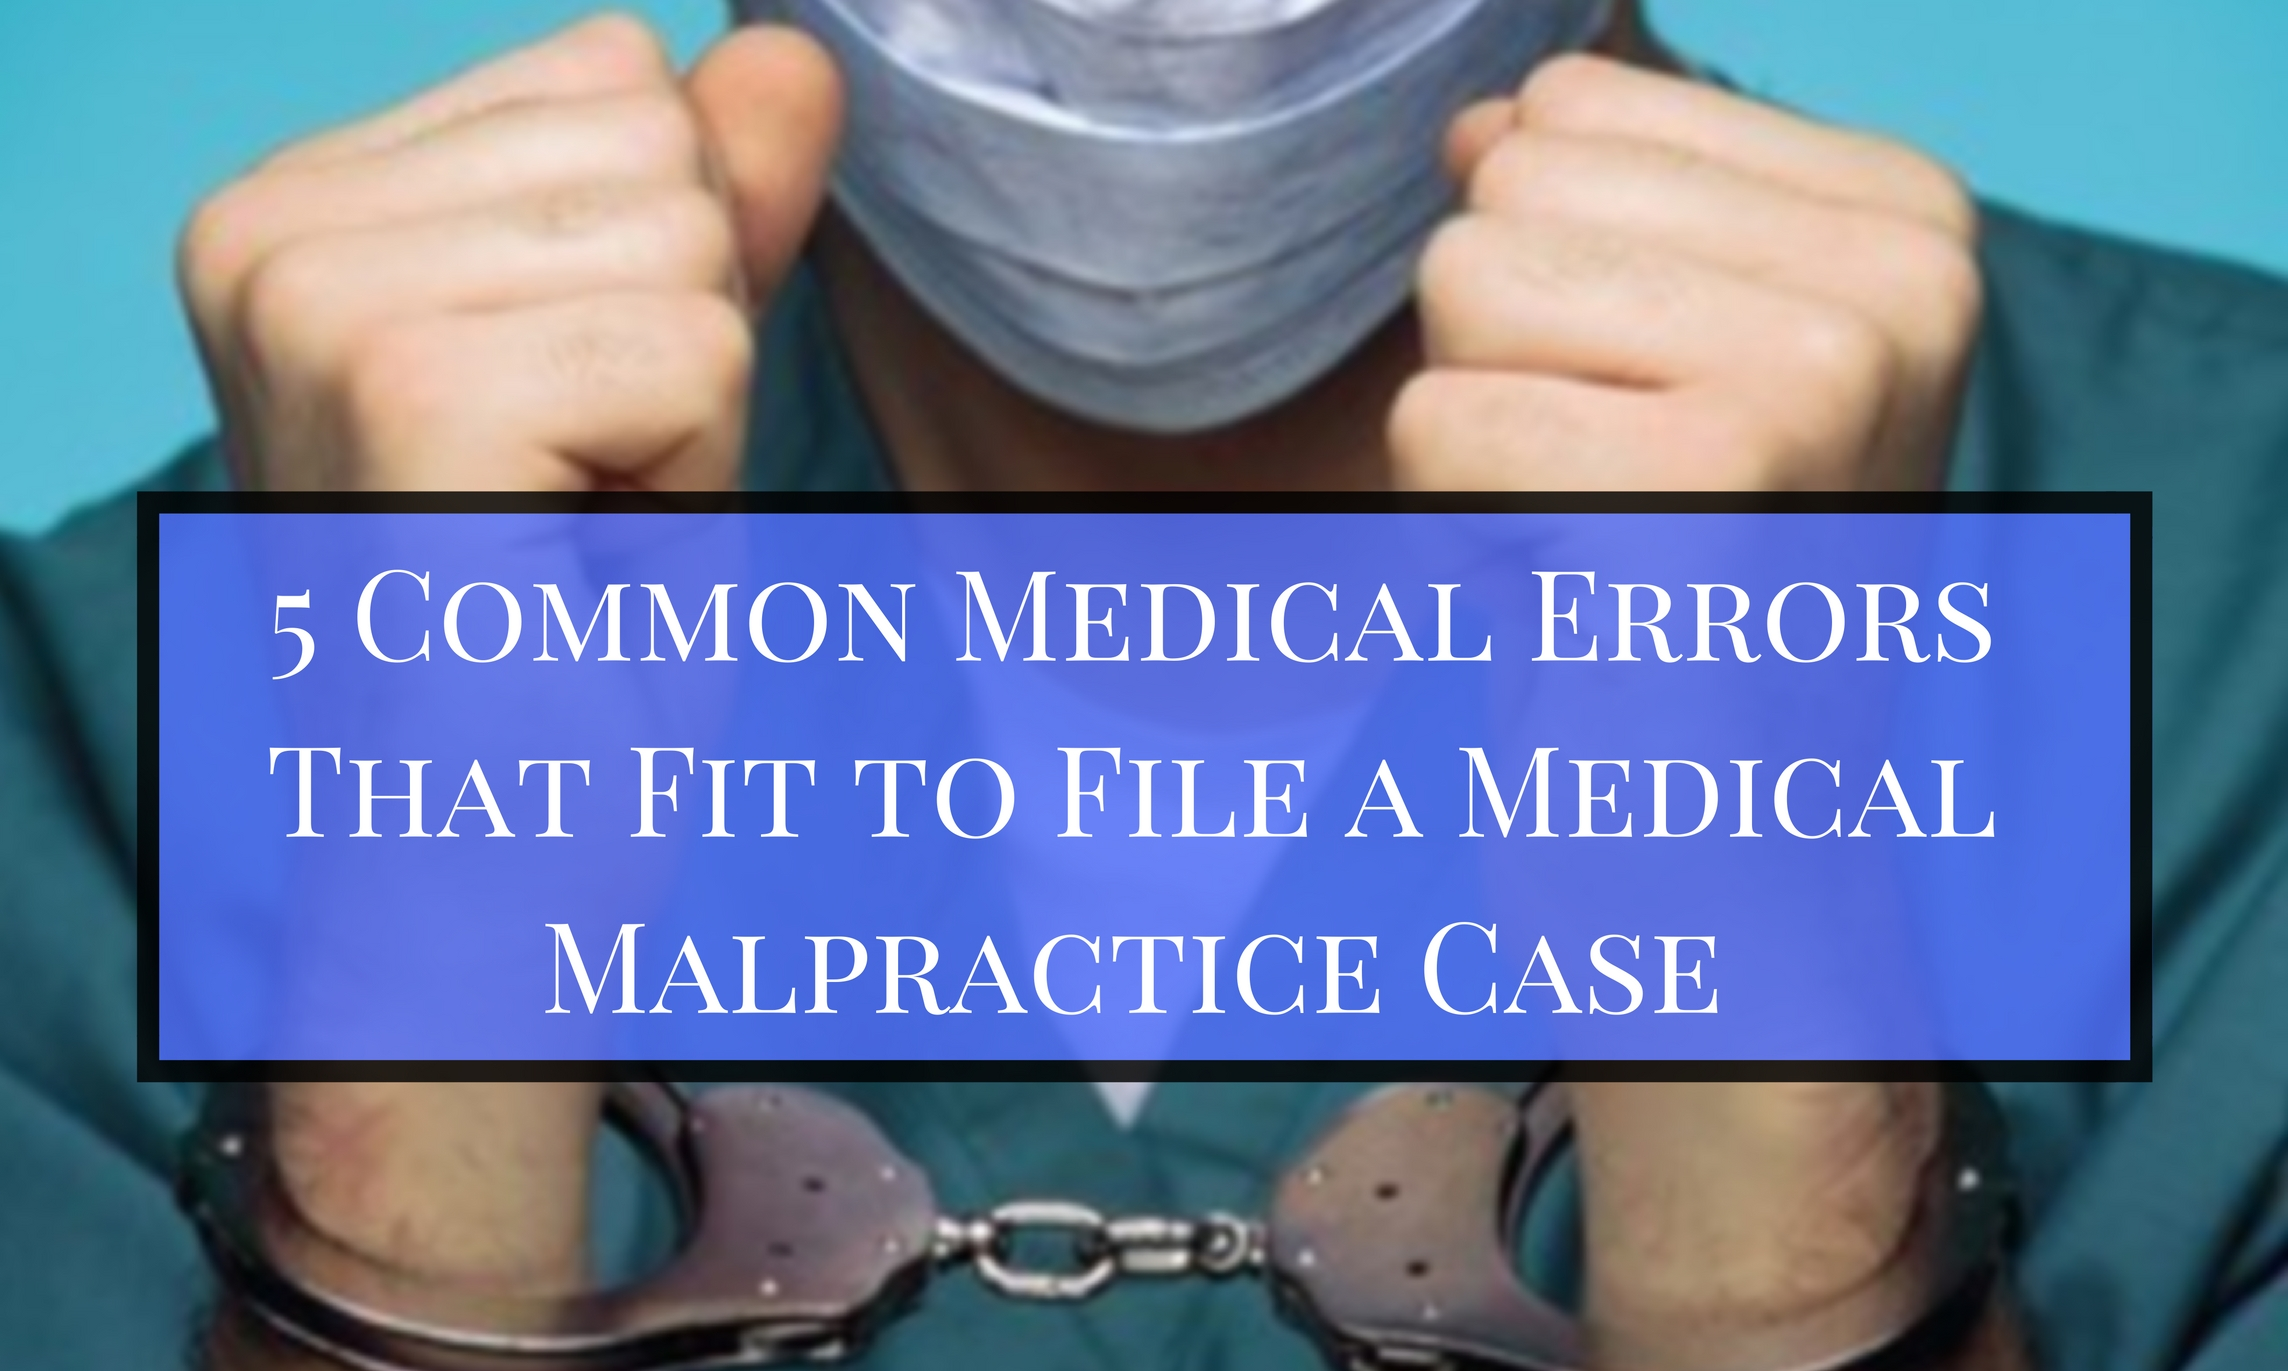 Common Medical Errors That Fit to File a Medical Malpractice Case